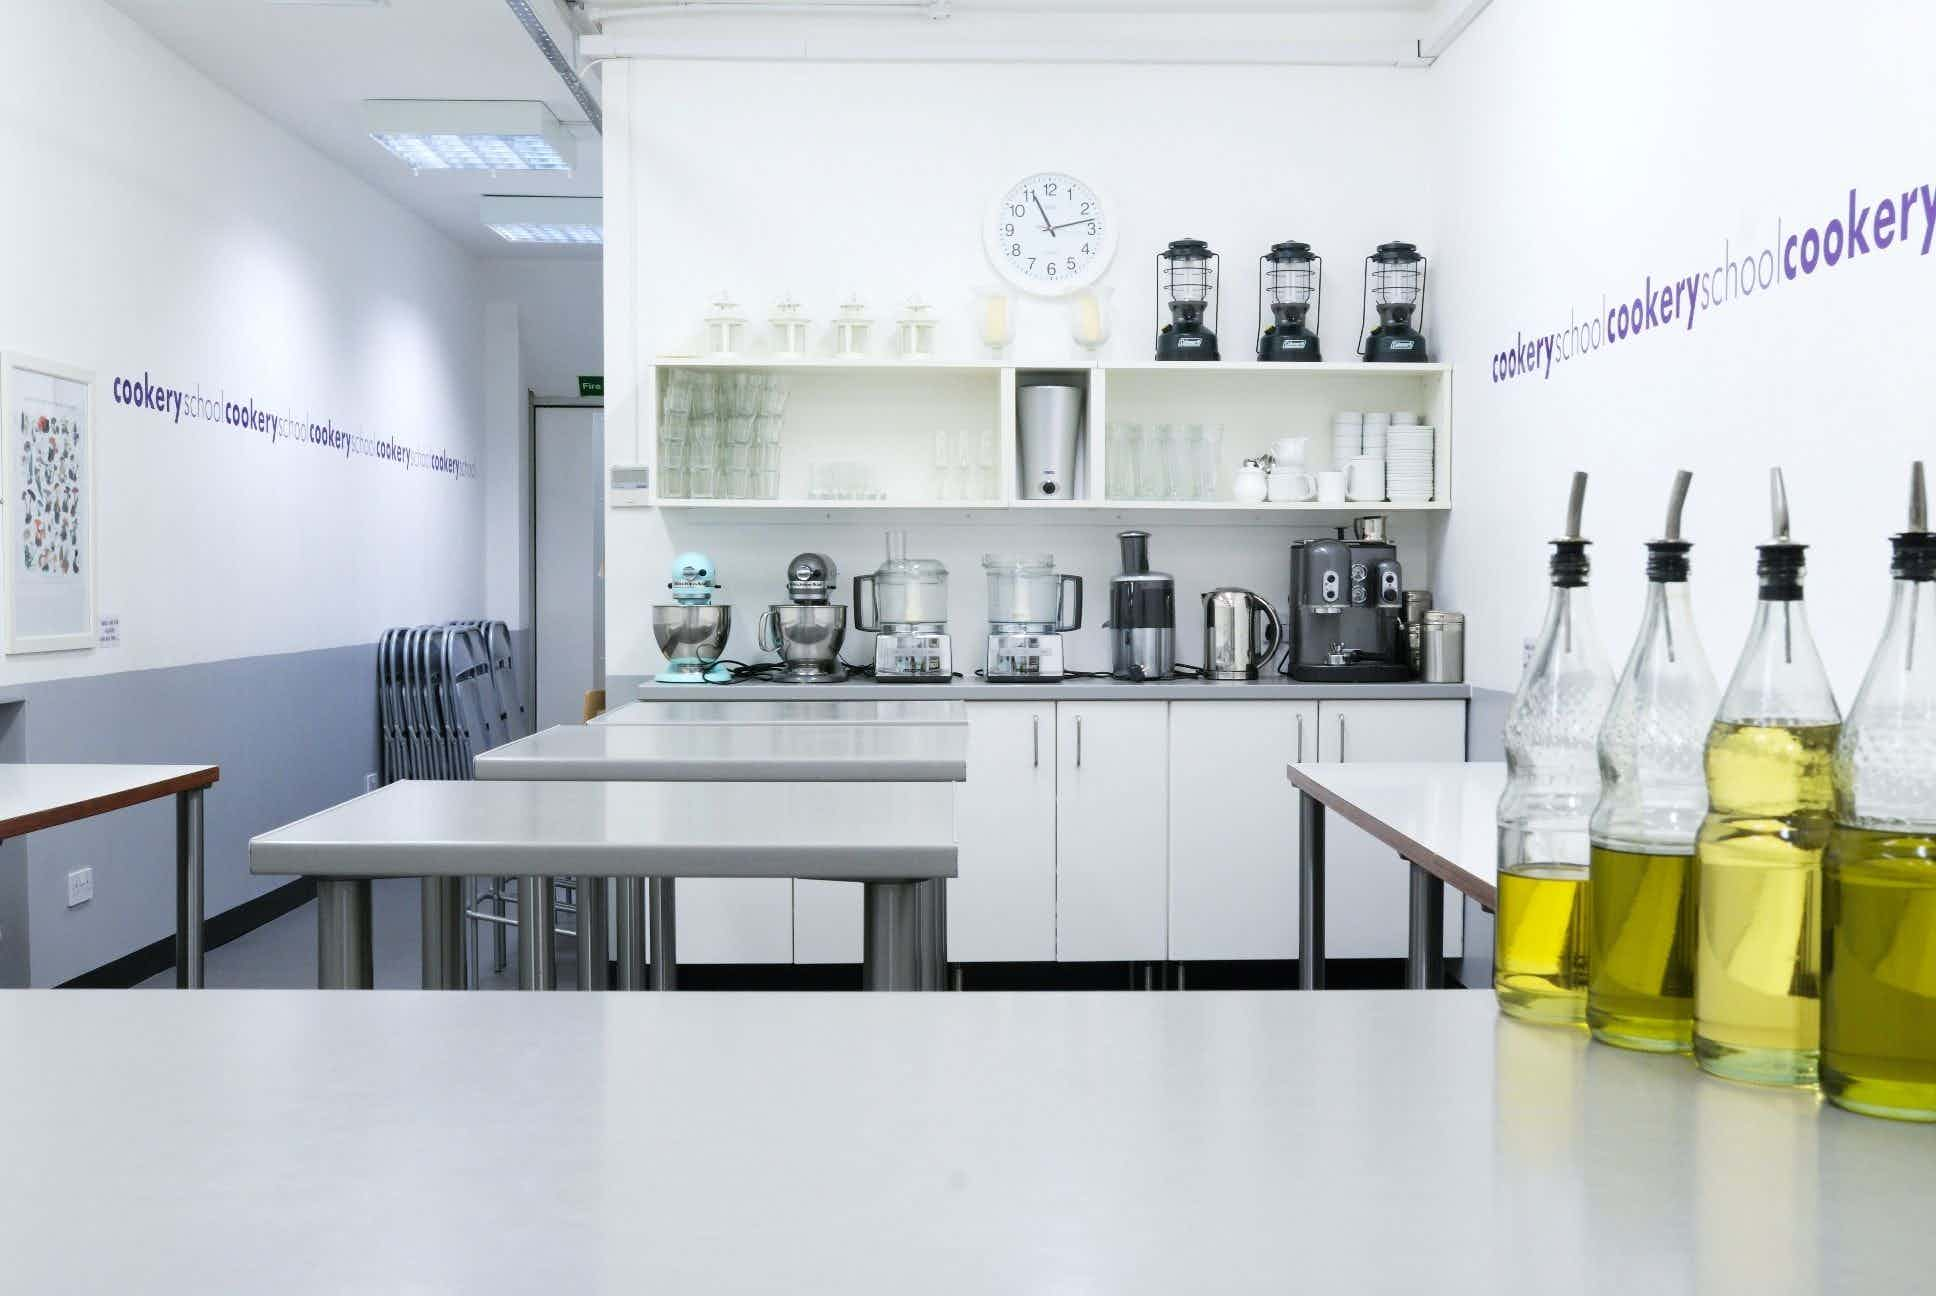 Corporate Cookery, Cookery School at Little Portland Street